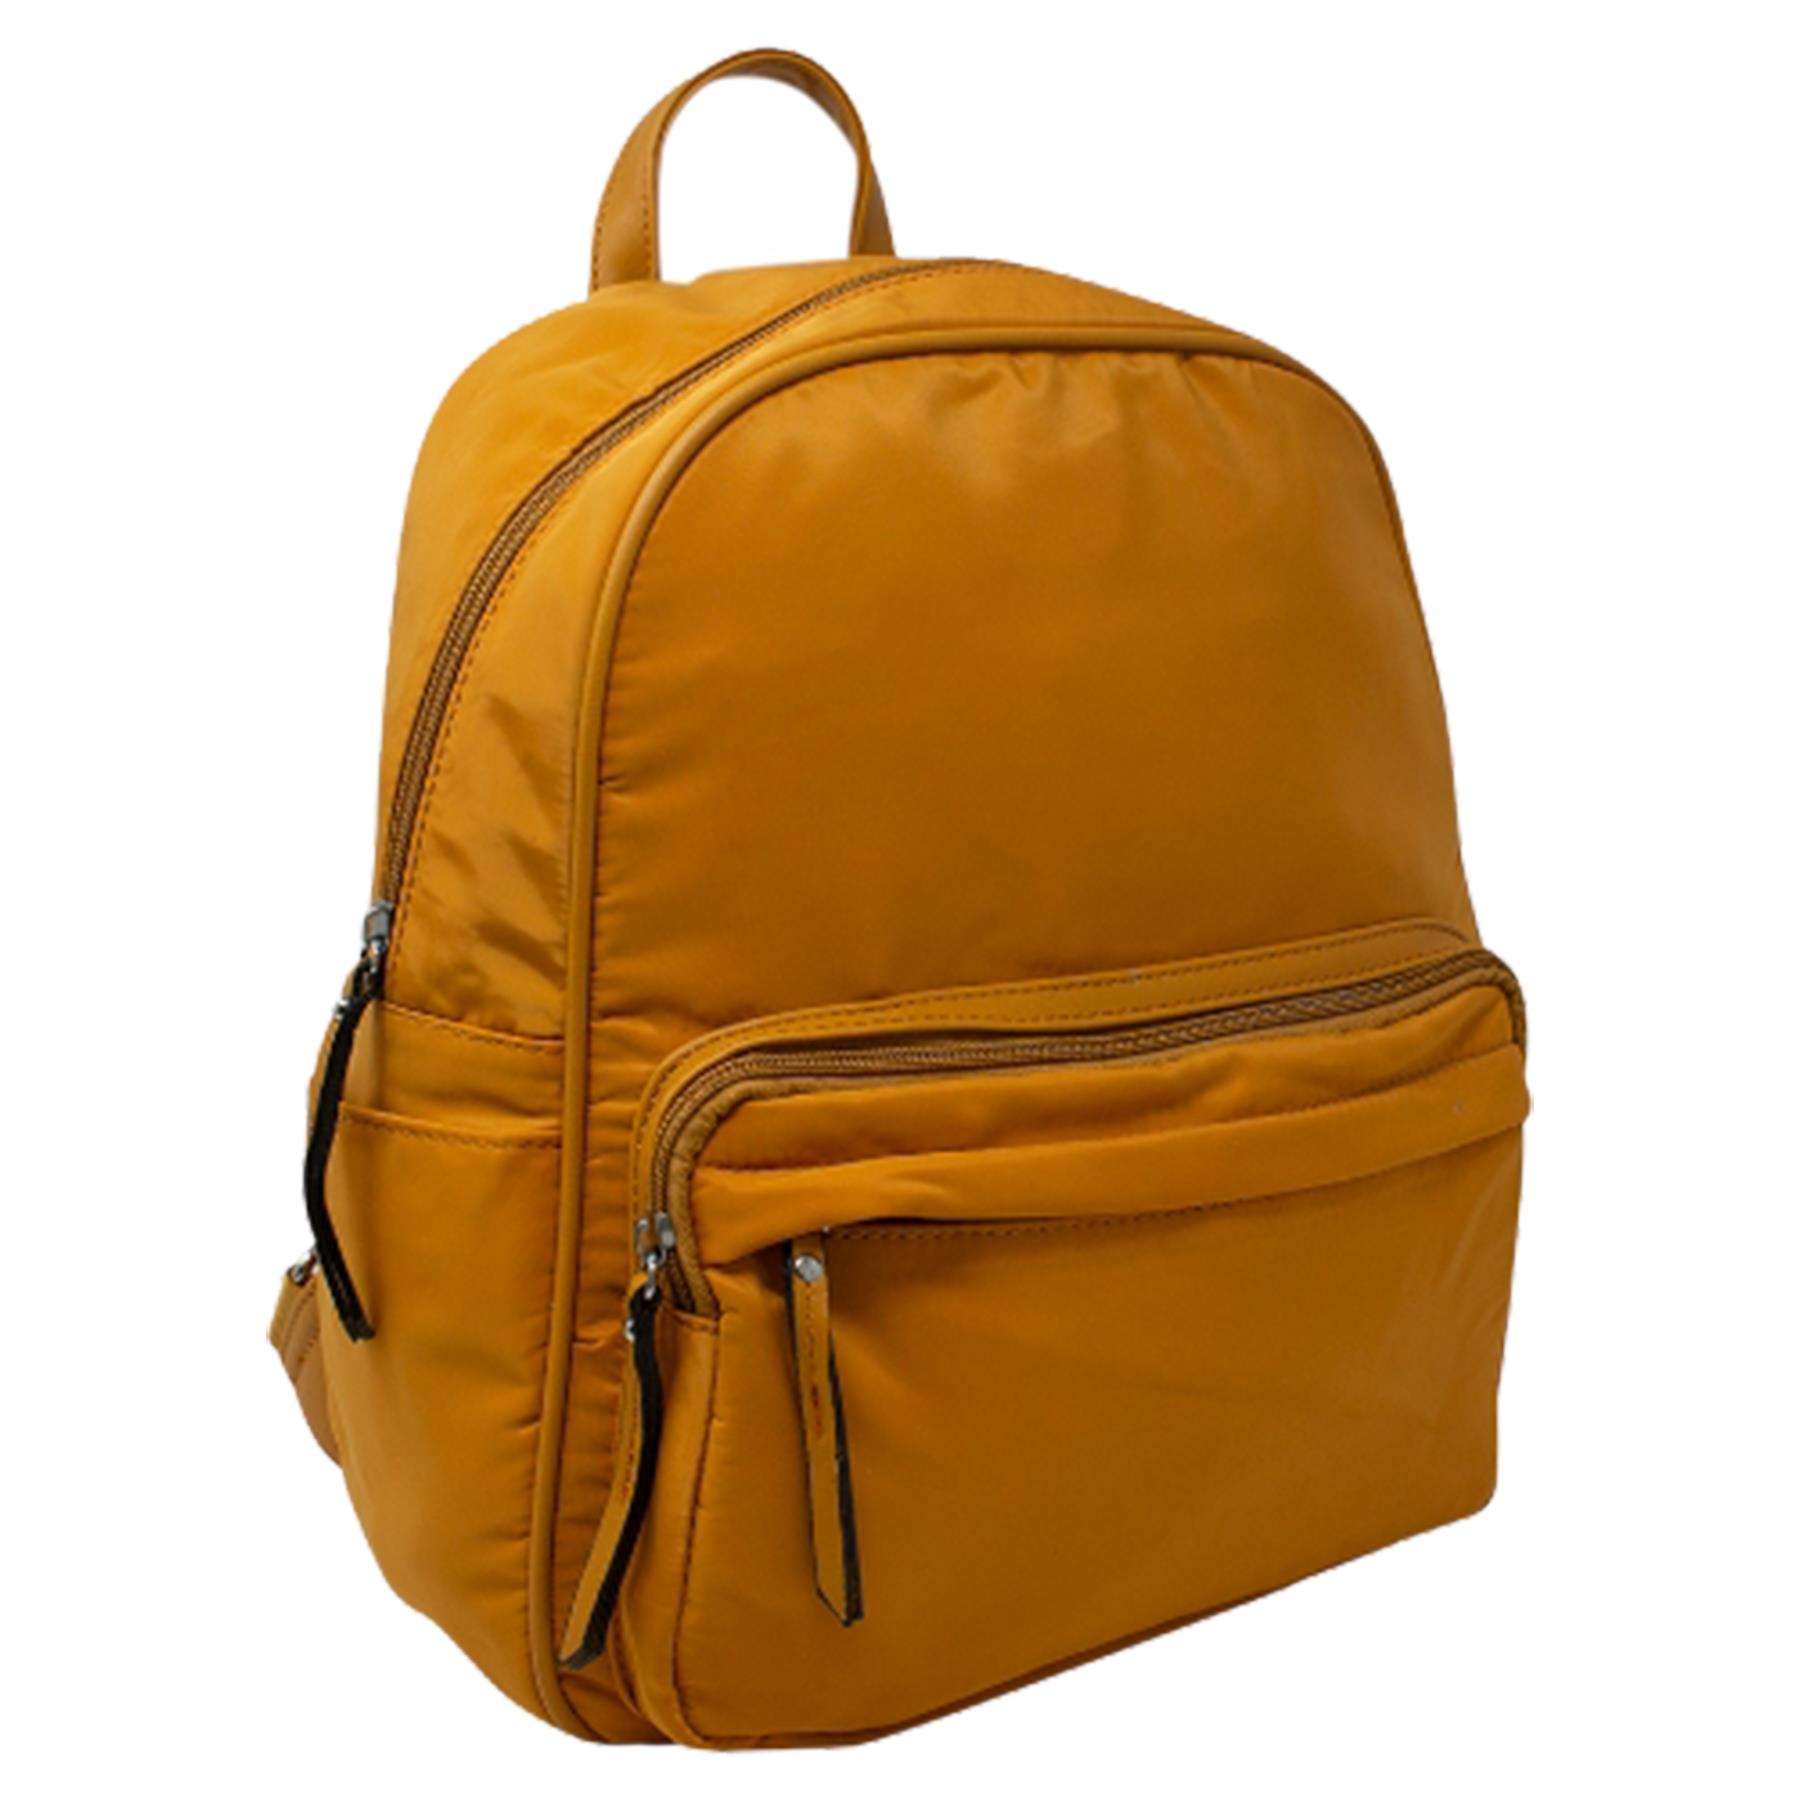 New-Unisex-Plain-Nylon-Showerproof-School-College-Backpack-Rucksack thumbnail 32